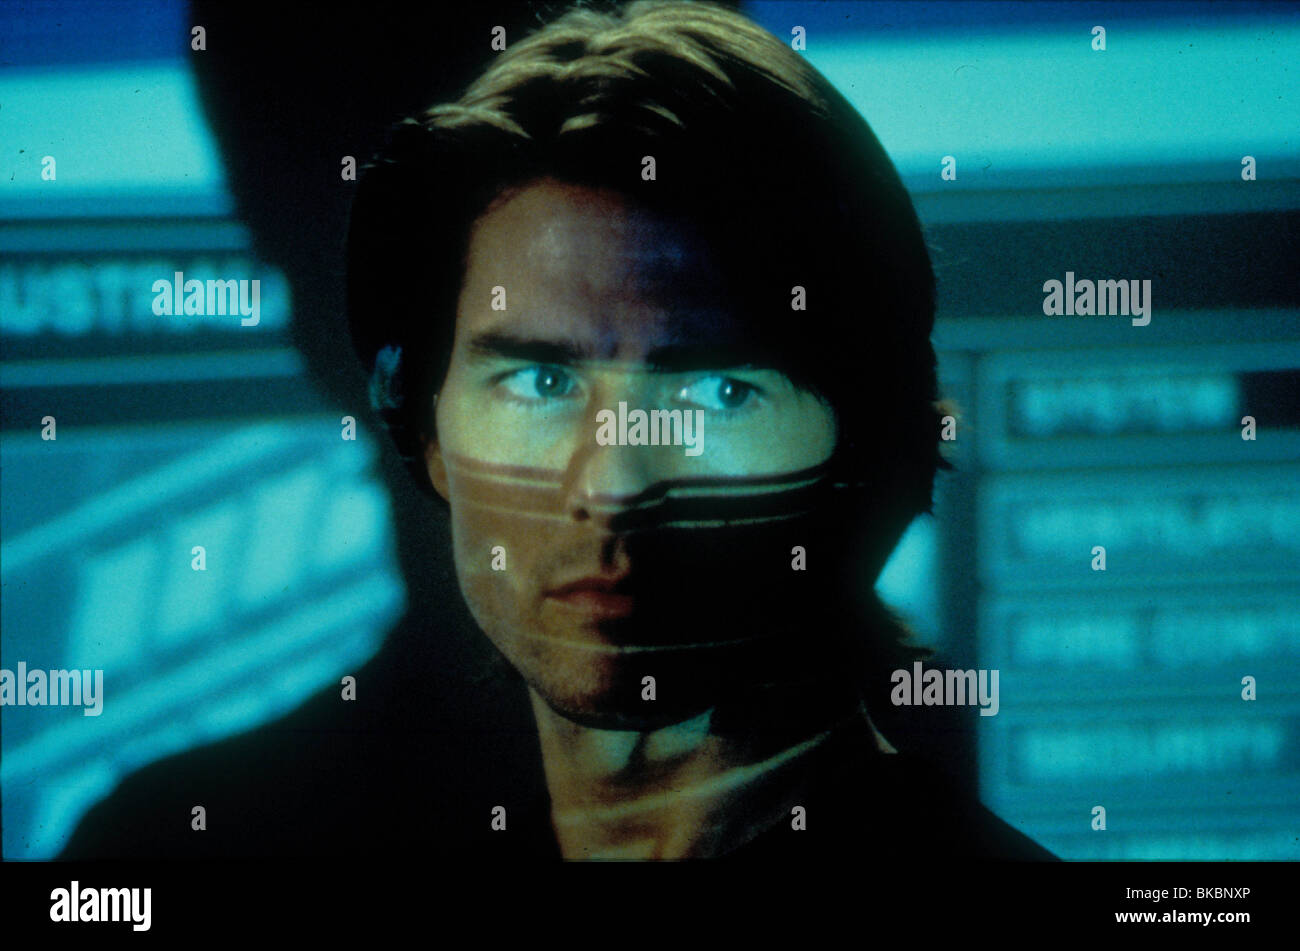 MISSION IMPOSSIBLE 2 (2000) TOM CRUISE MIS2 146 - Stock Image